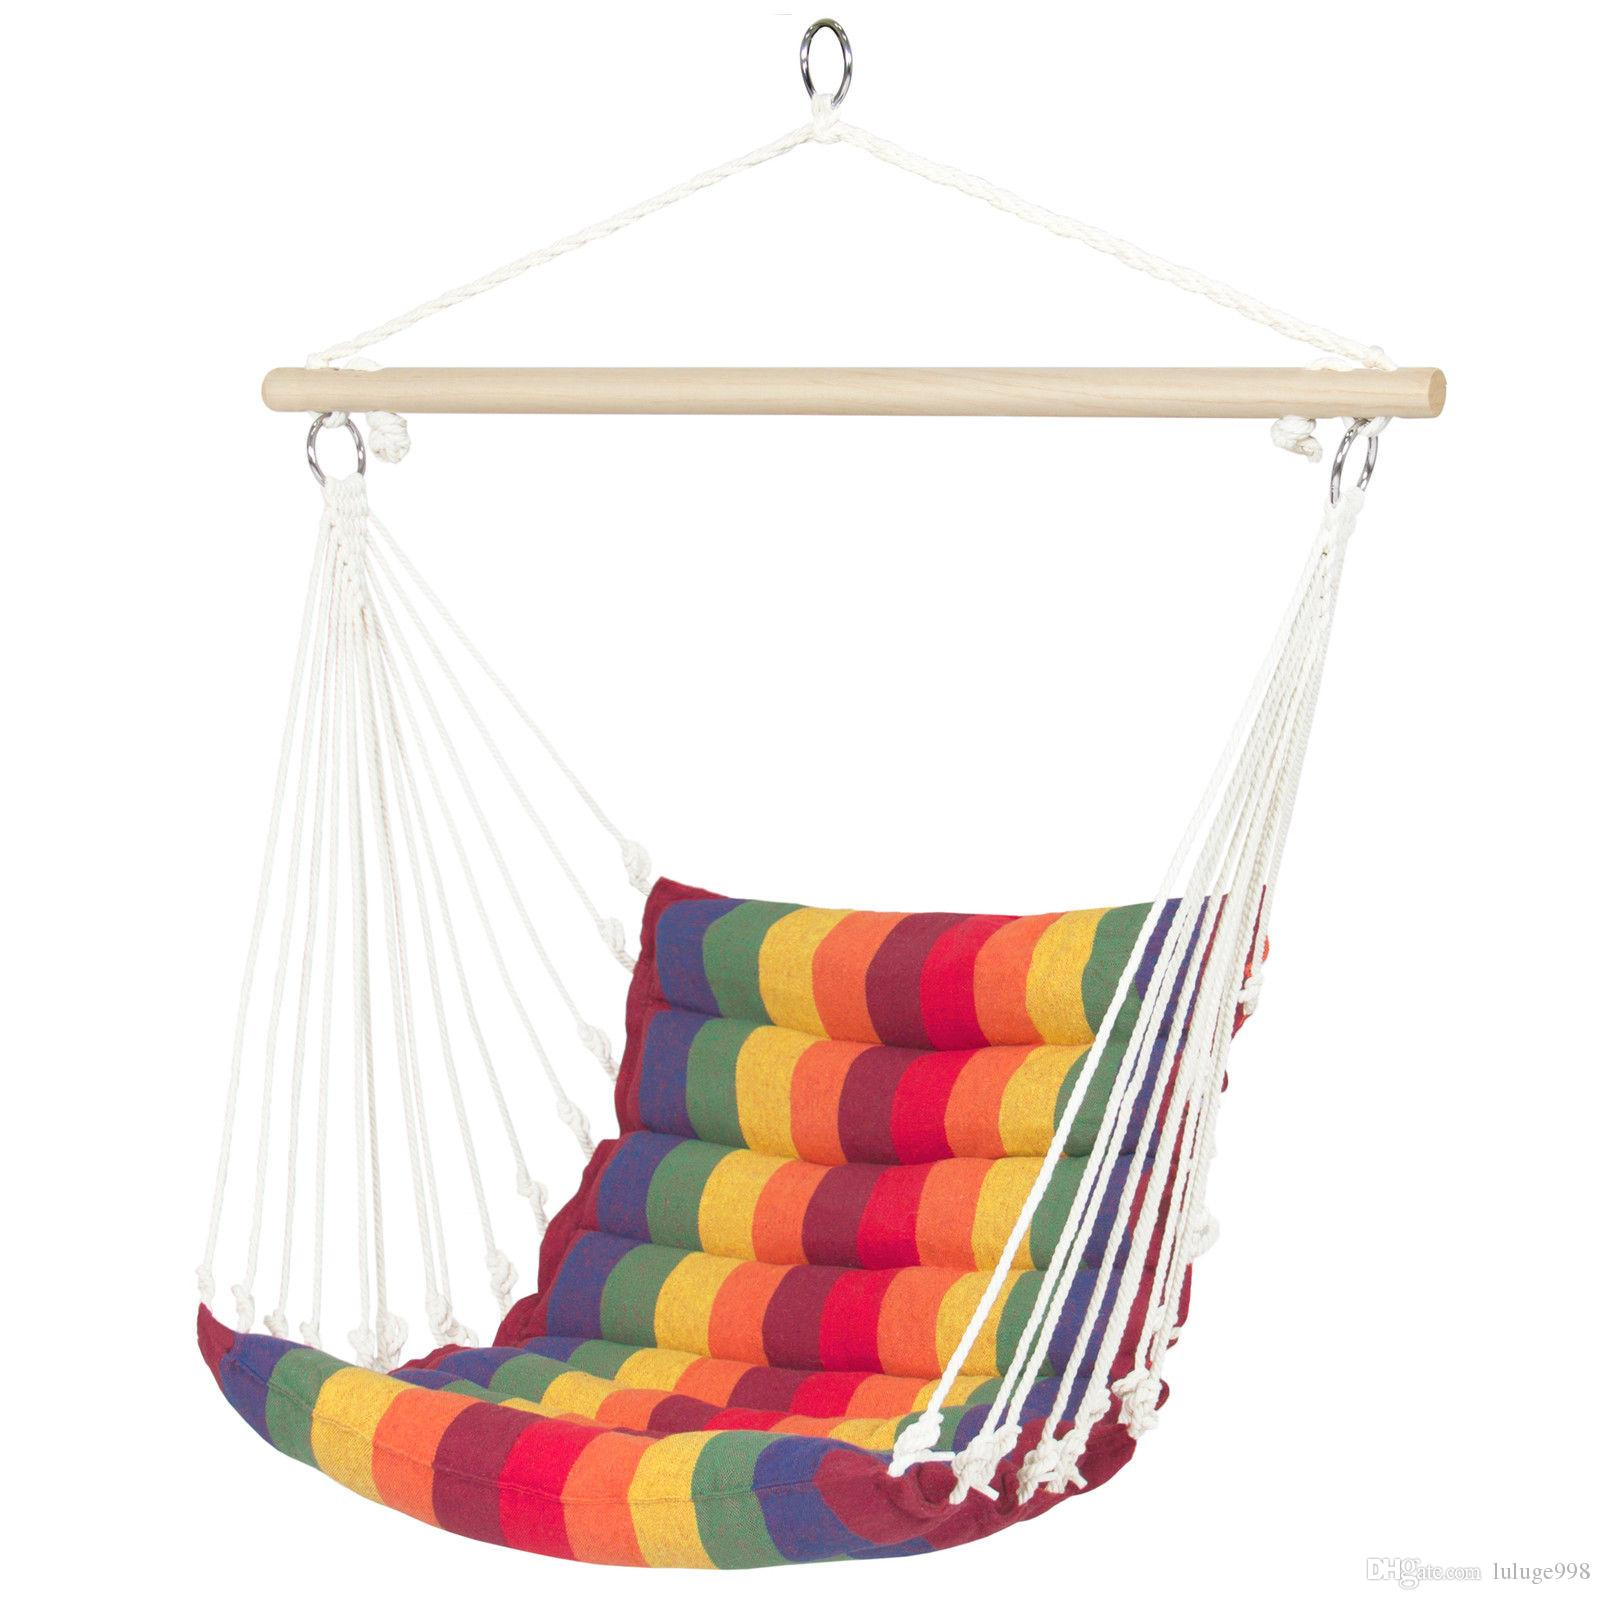 Superieur Best Deluxe Padded Cotton Hammock Hanging Chair Indoor Outdoor Use Rainbow  Multicolor Under $30.16 | Dhgate.Com